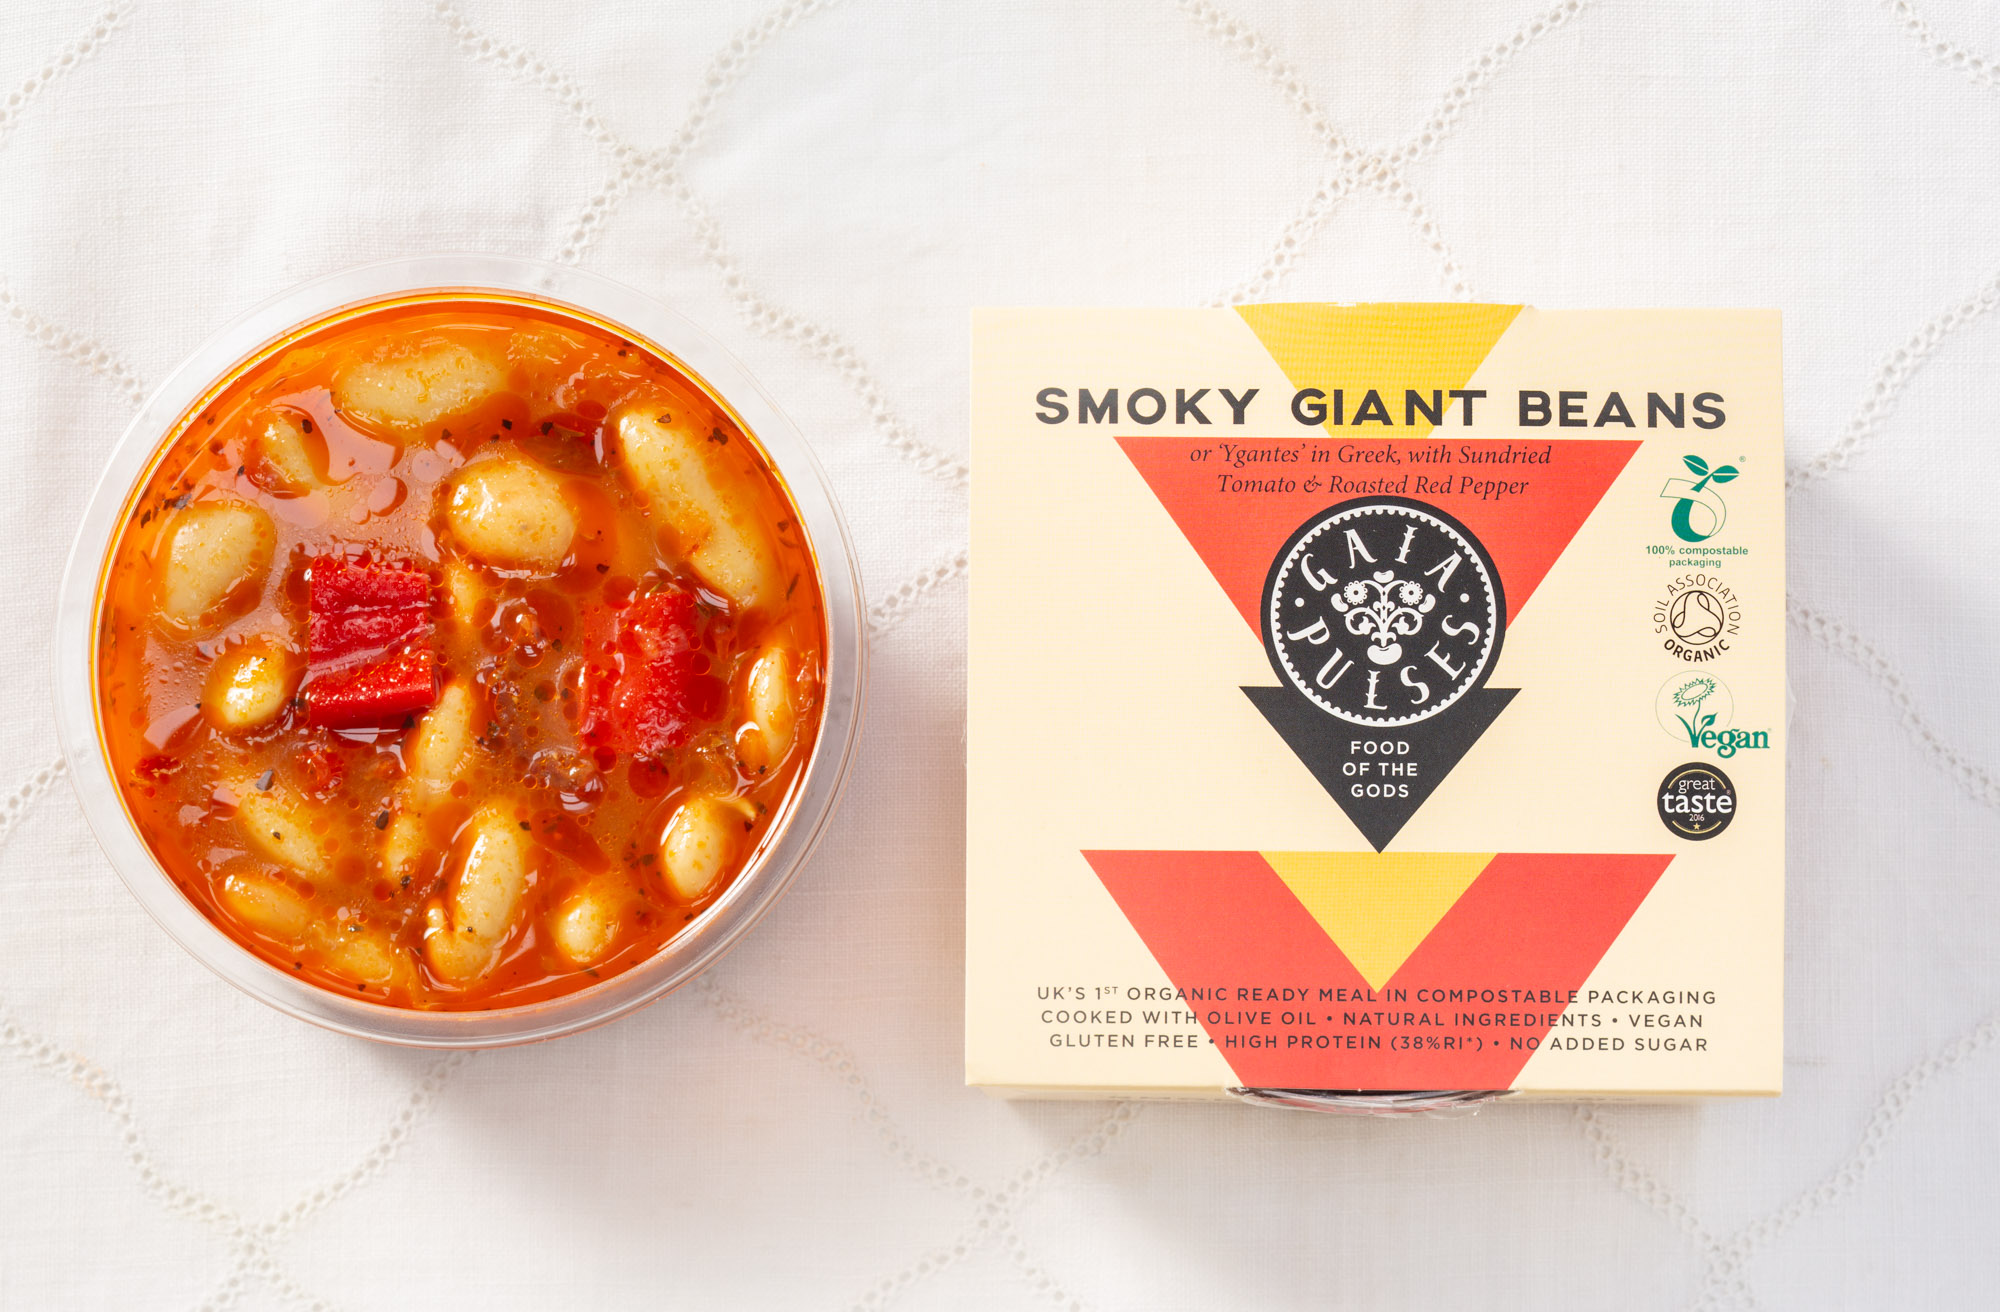 Inspired by 'Gigantes,' a renowned dish from the North of Greece. Gigantes is made with the large Butter Beans that grow in the area - smoked Red Pepper, Sun-dried Tomato, Extra Virgin Olive Oil, Garlic and an array of Mediterranean Spices. High on Protein, Folate, B Vitamins and Fibre.